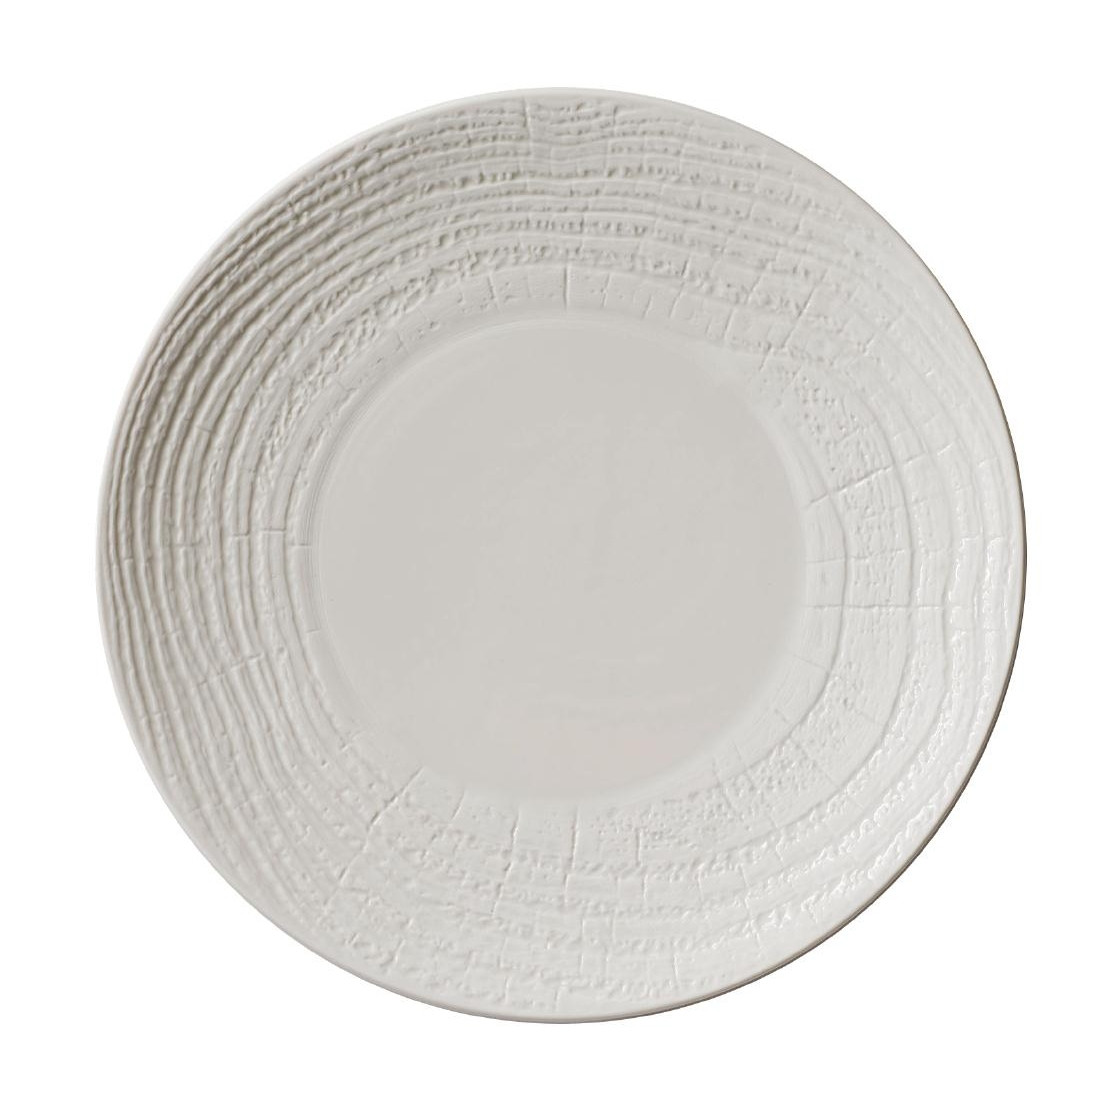 Superieur Revol Arborescence Round Plate Ivory 310mm